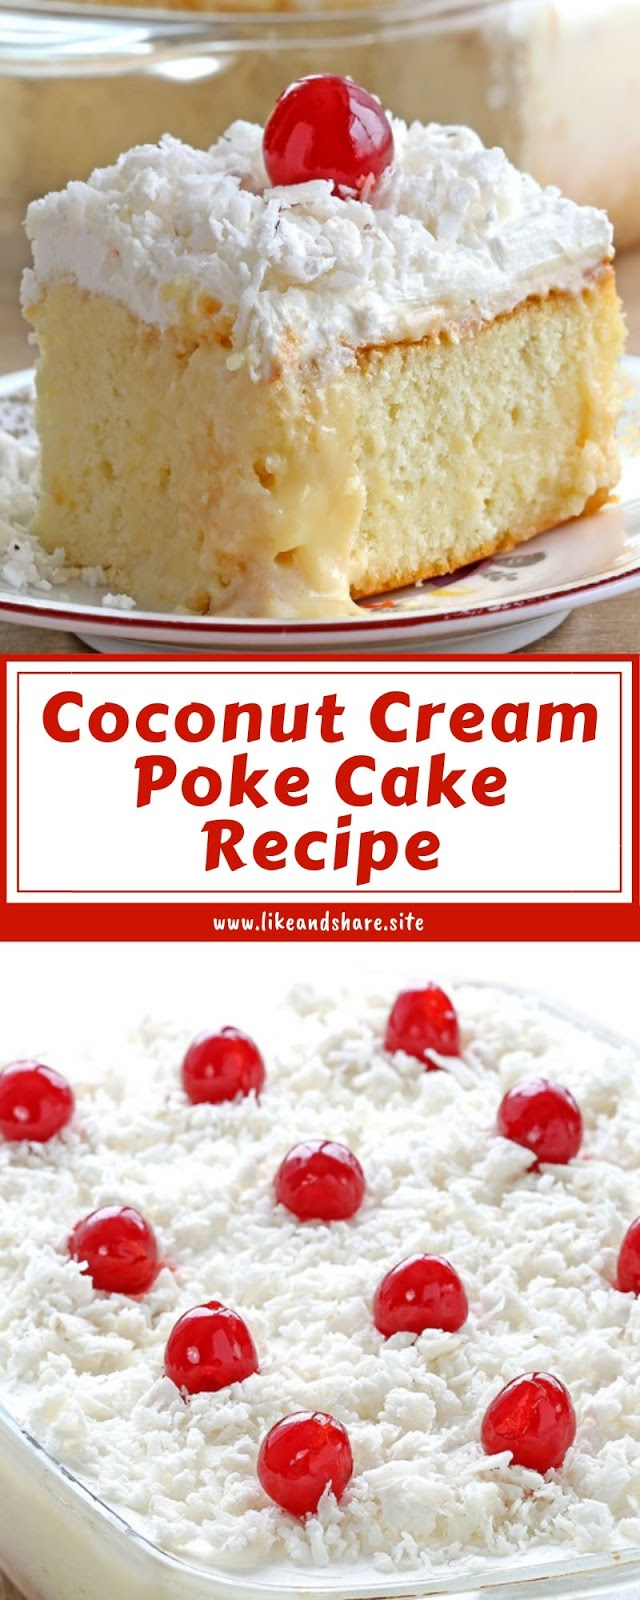 Coconut Cream Poke Cake Recipe